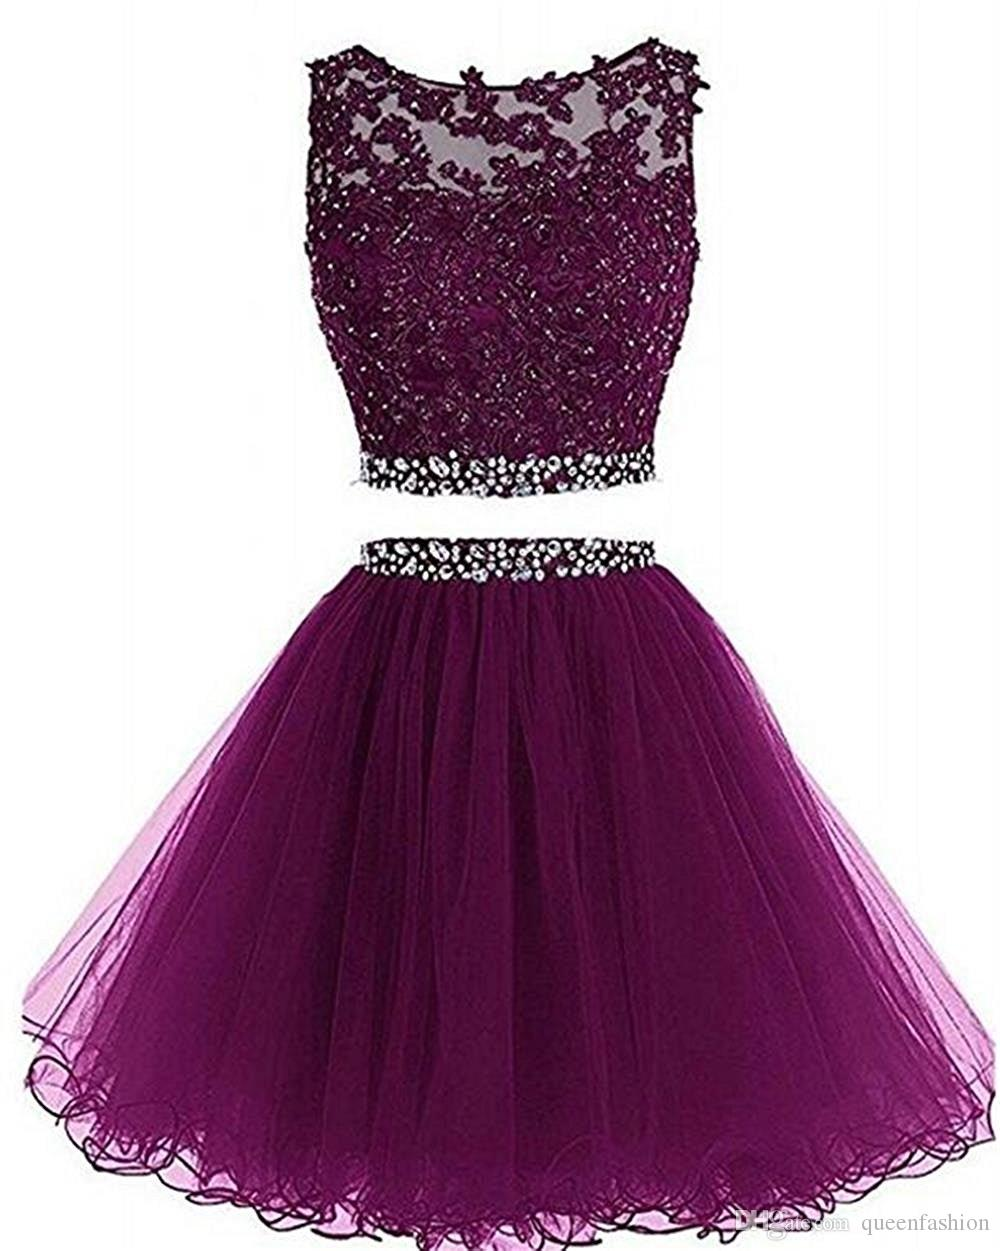 2019 Two Pieces Prom Dress Short Lace Appliques with Crystal Beaded Keyhole Back Tulle Sweet 16 Party Dresses Graduation Homecoming Gowns